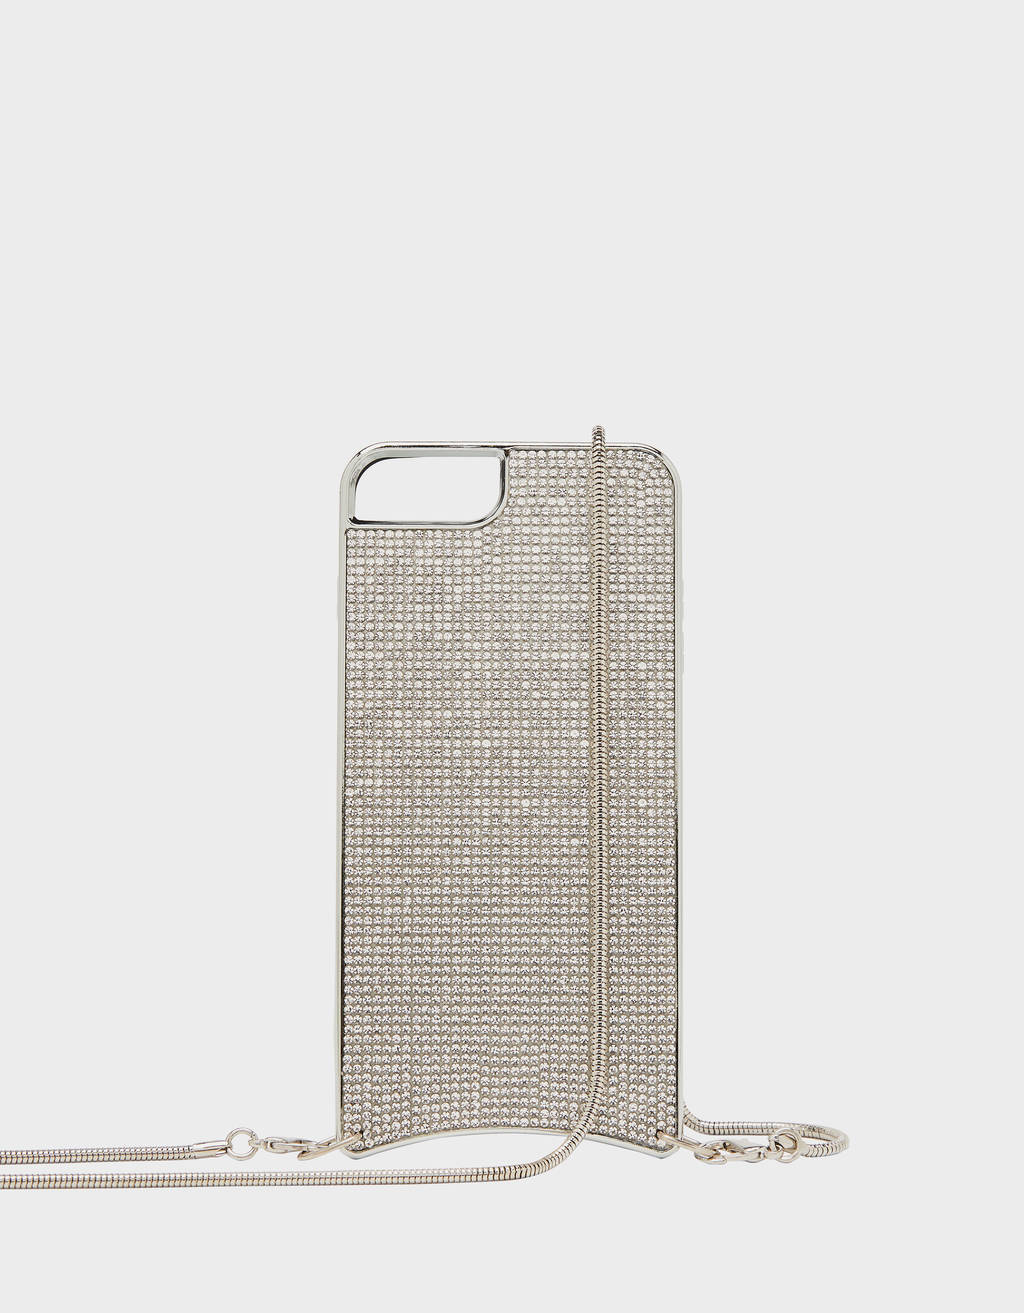 Carcassa amb brillantors i cadena iPhone 6 Plus / 7 Plus / 8 Plus